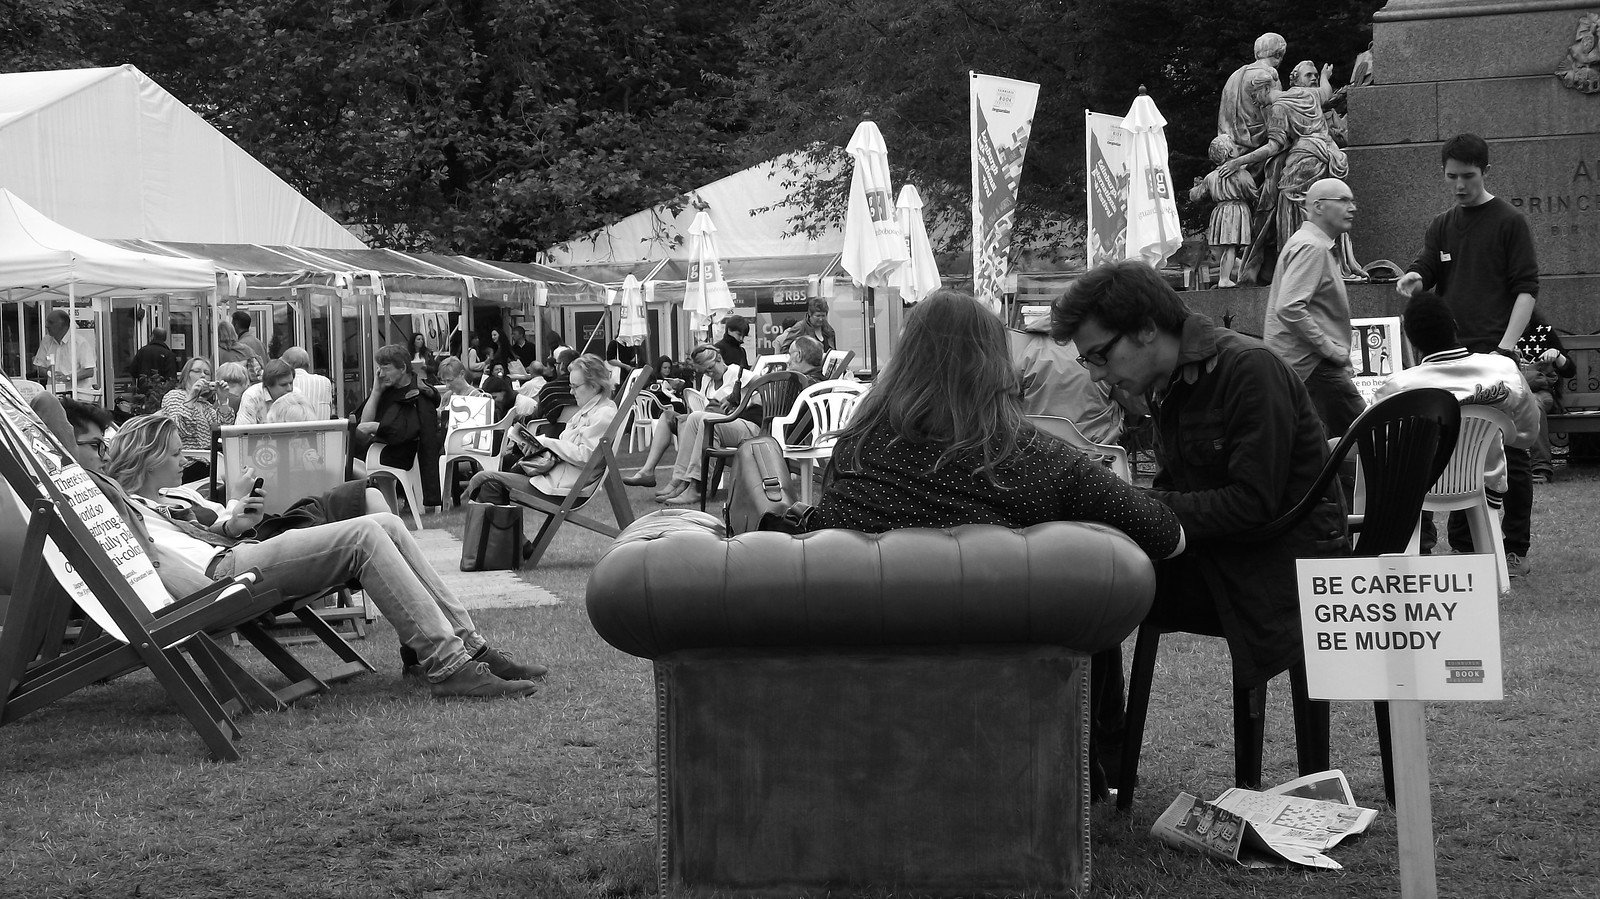 Edinburgh International Book Festival, Charlotte Square 01